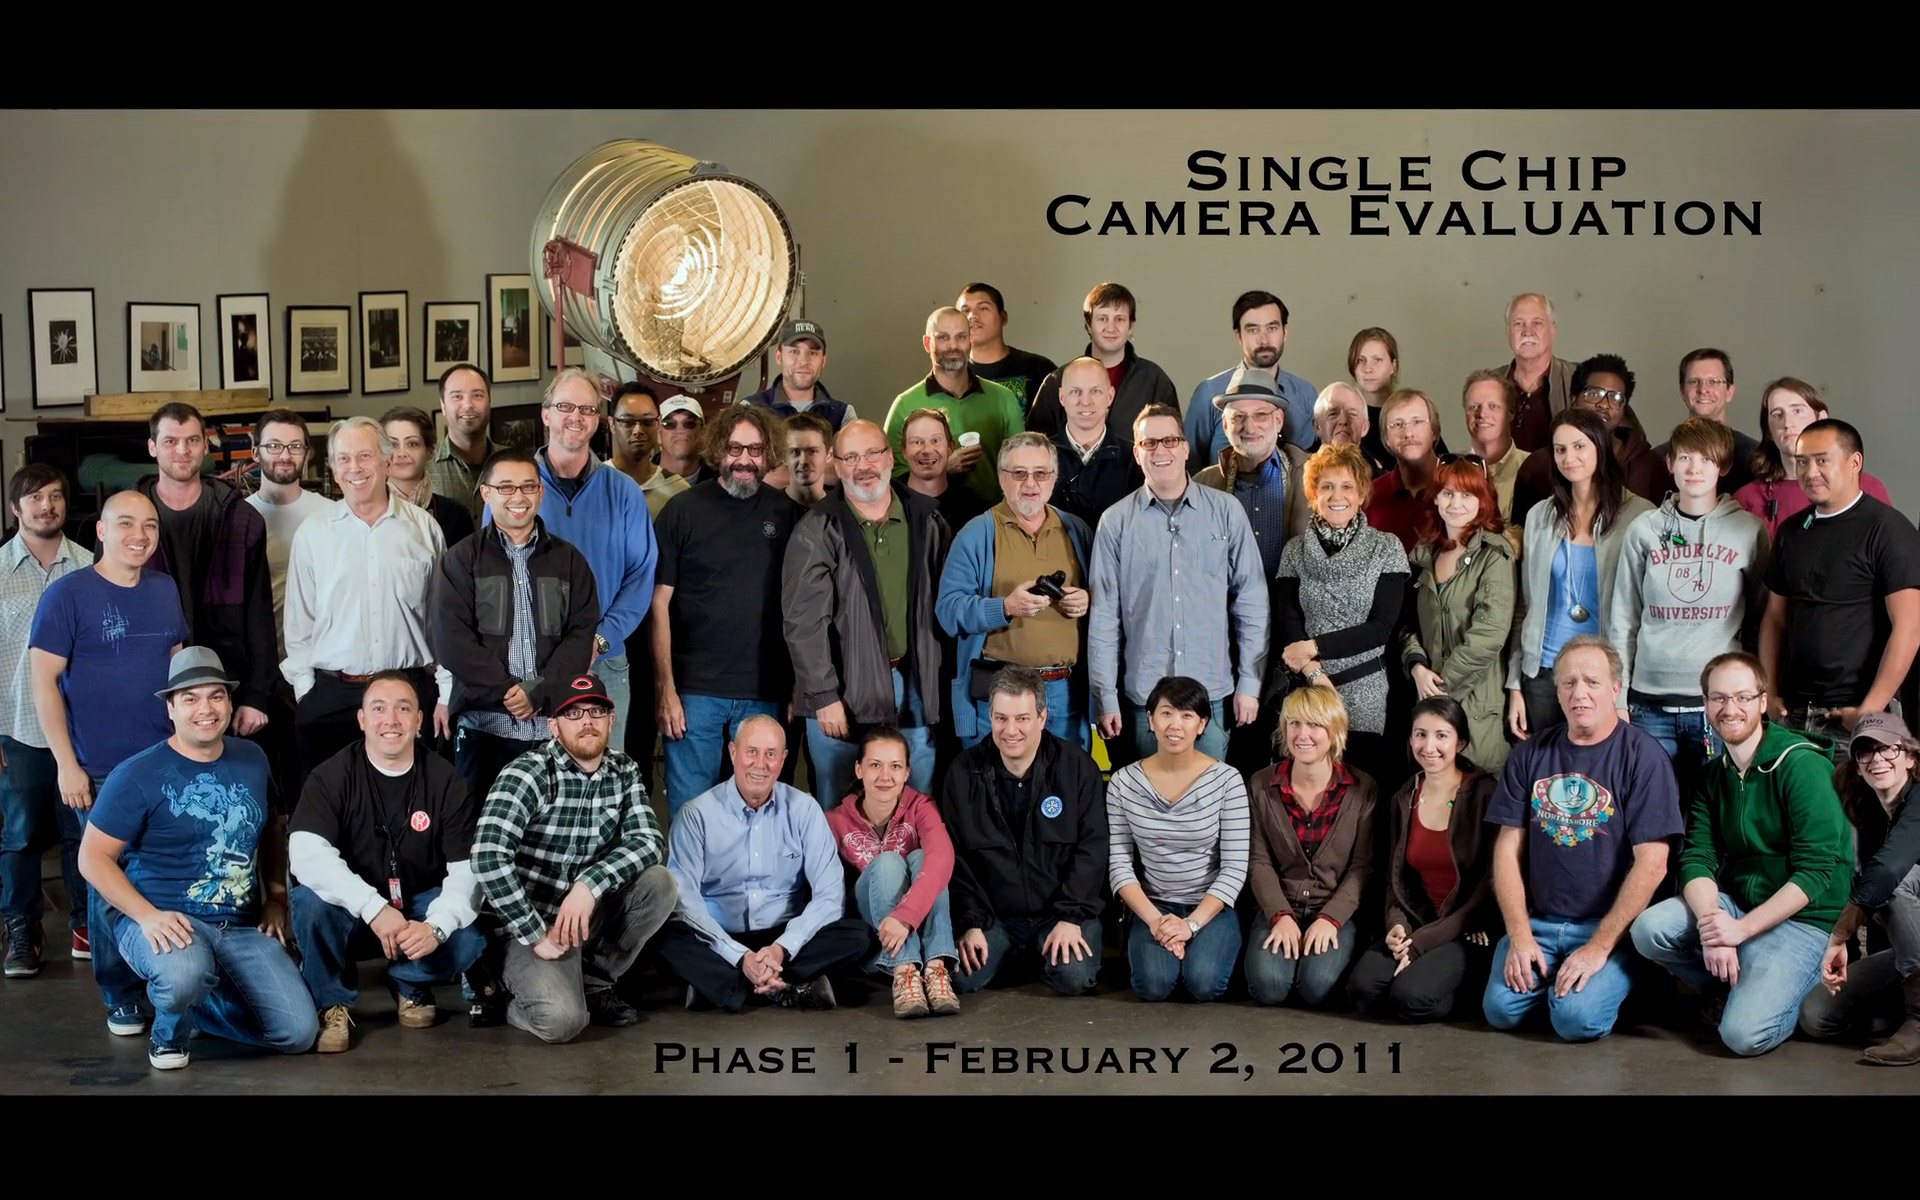 Zacuto Single Chip Camera Evaluation - scce